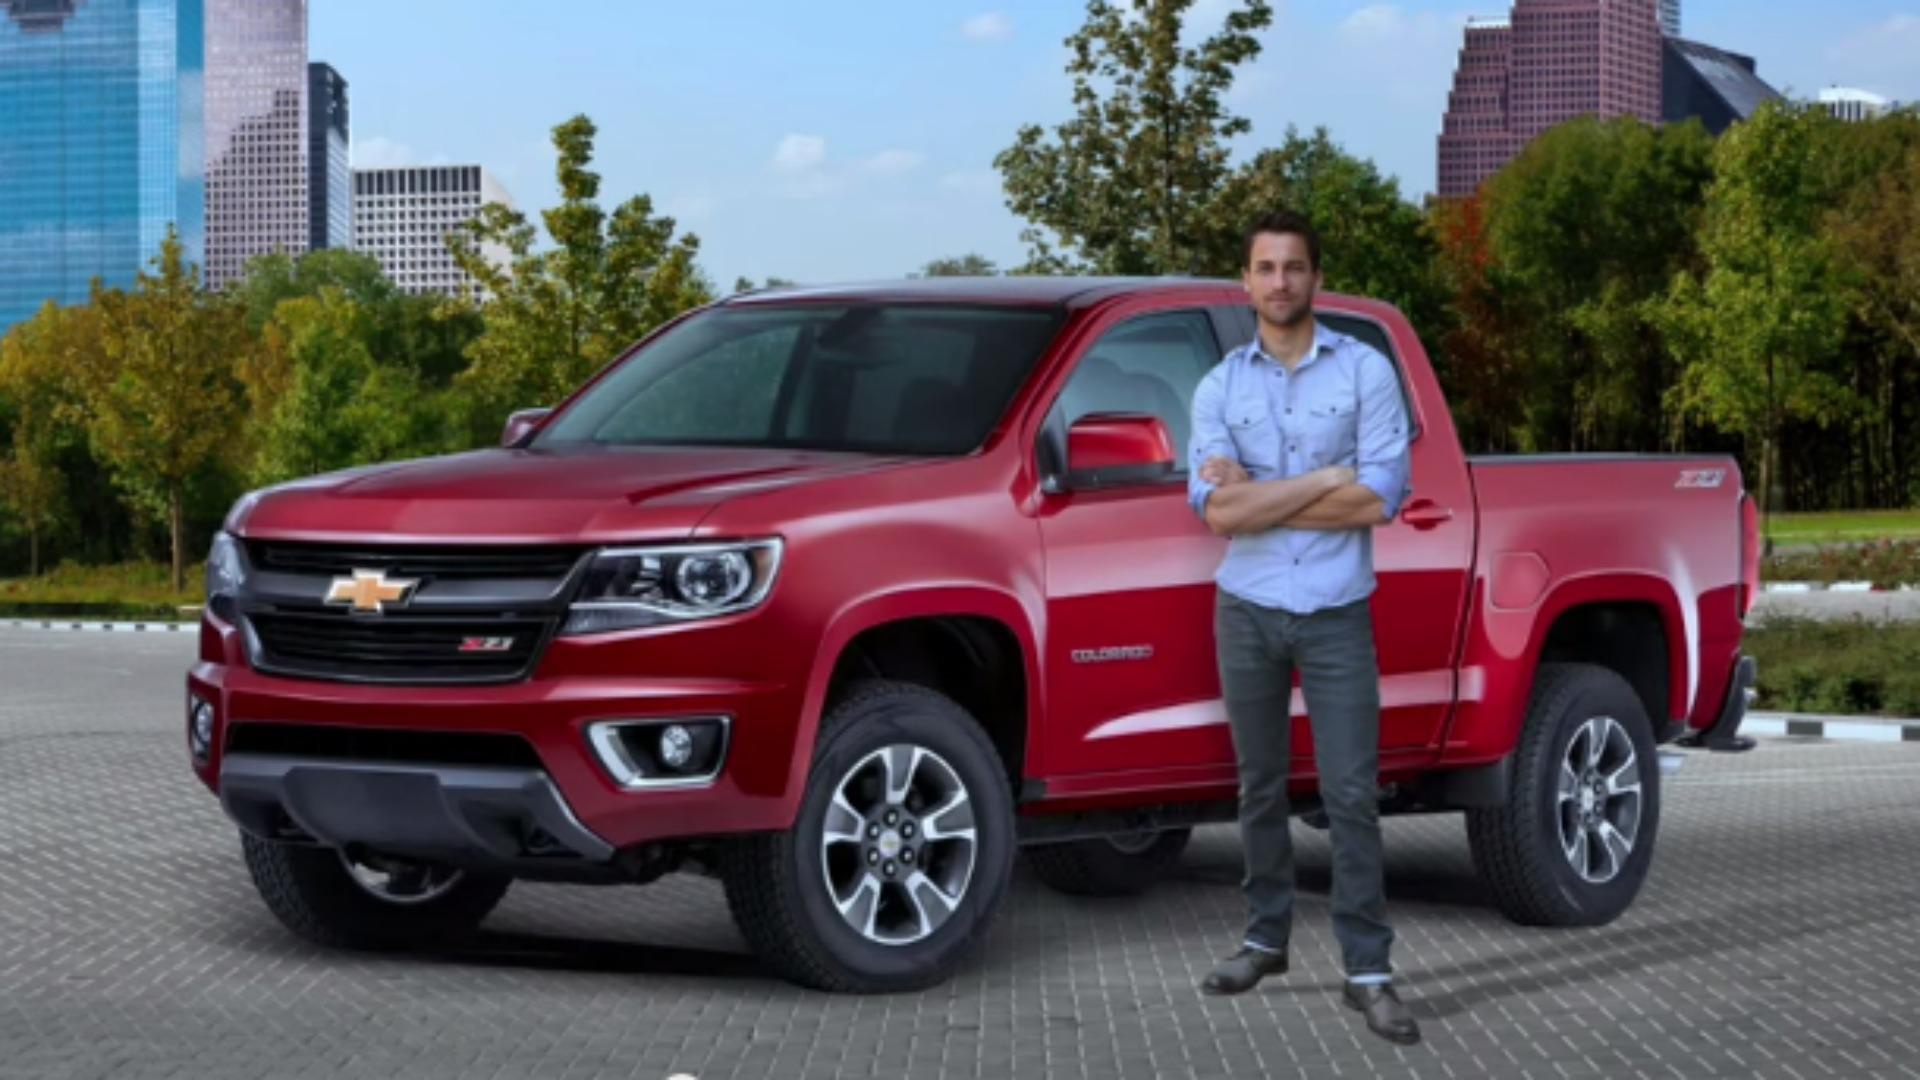 Chevrolet commercial photo - 1